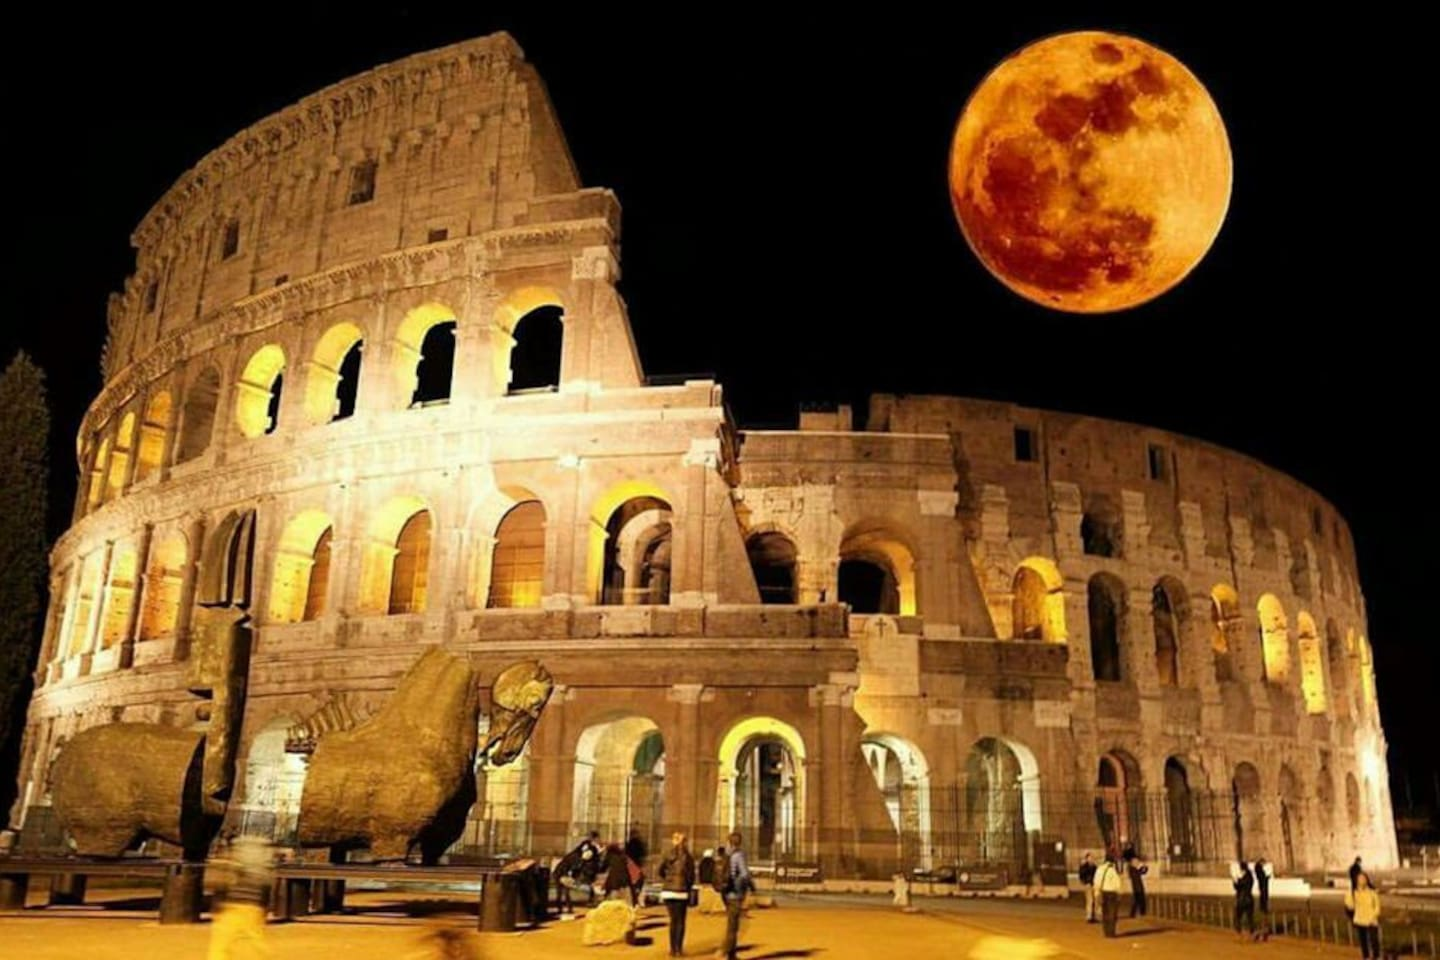 Coloseum by night